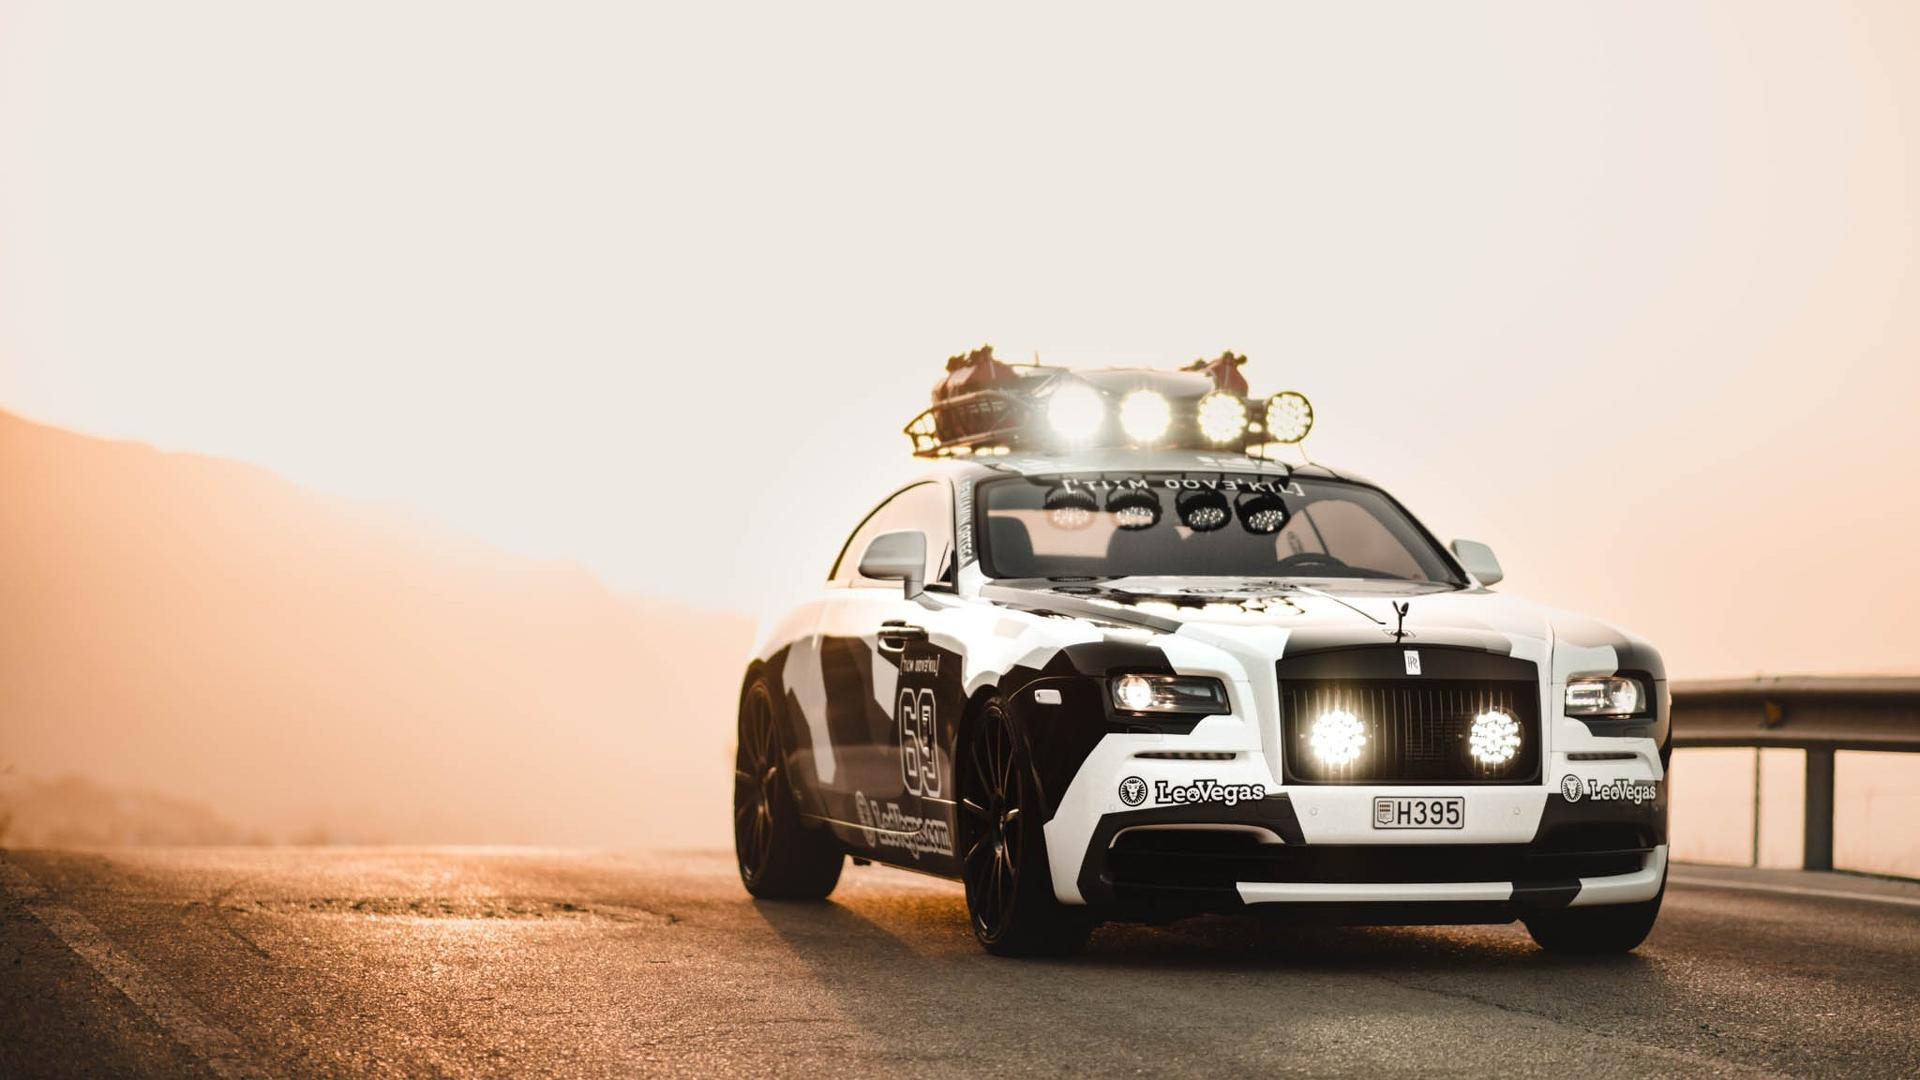 Famous professional free-skier and racing driver Jon Olsson has posted a sale ad with Autoleitner for his modded Rolls-Royce Wraith sport car equipped with a 812hp / 605kW strong engine